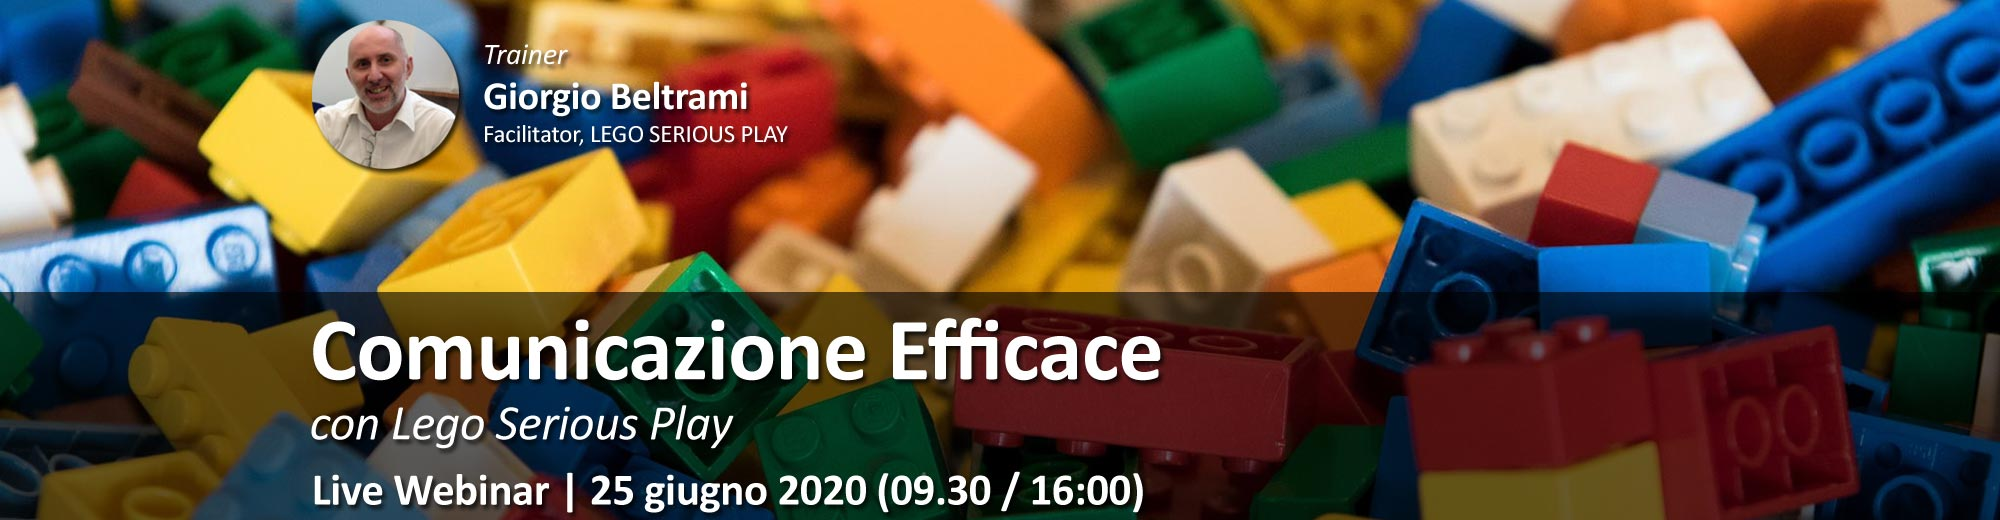 Comunicazione Efficace con Lego Serious Play